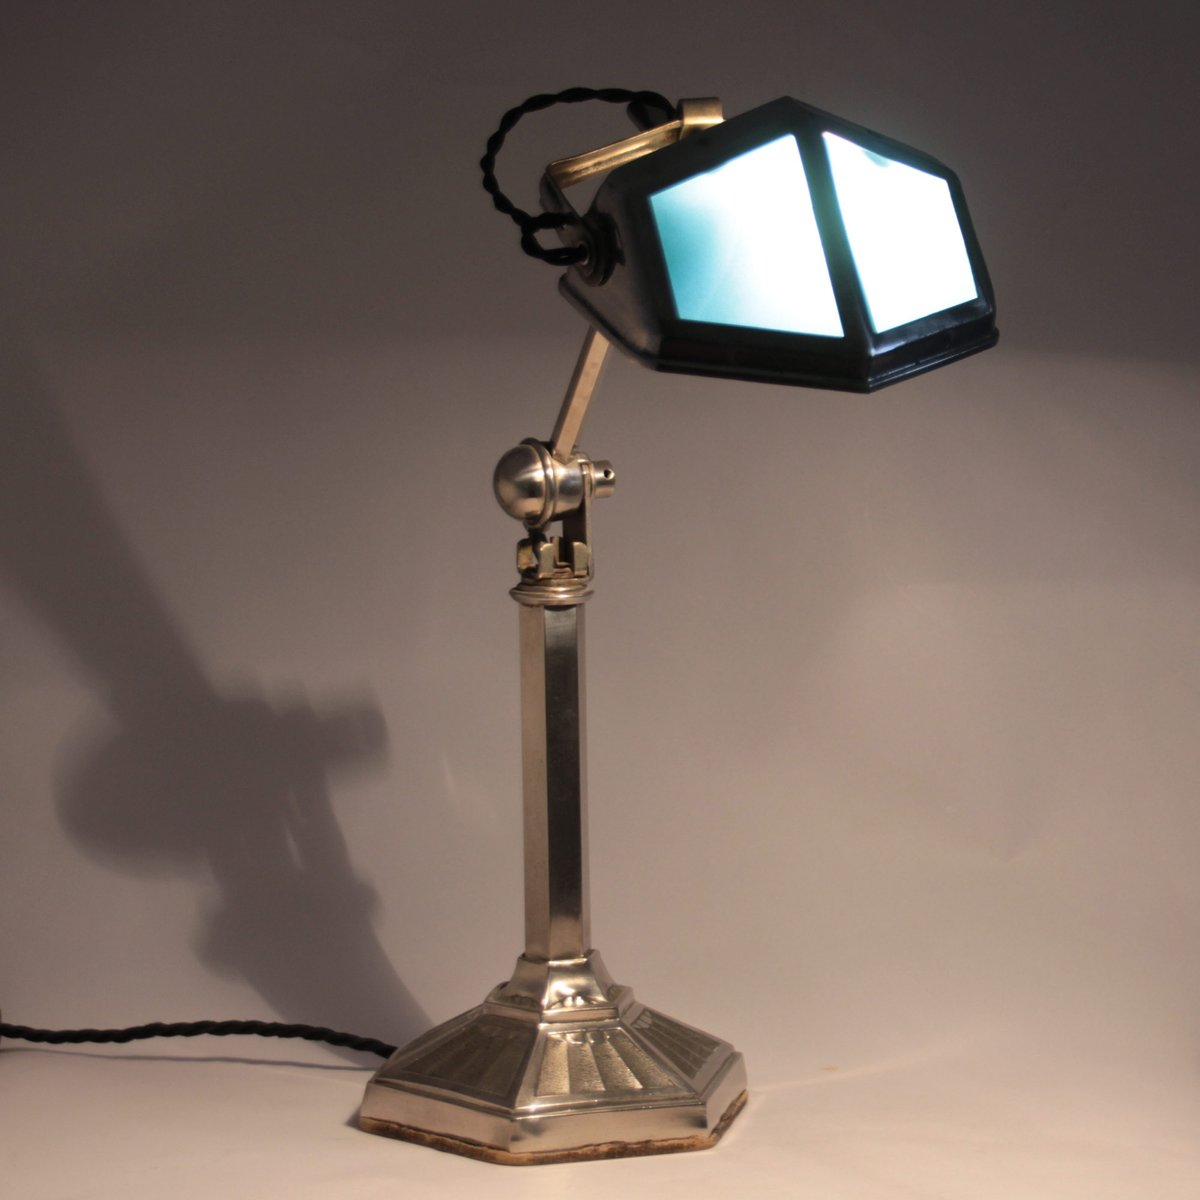 Vintage French Desk Lamp from Pirouette 1920s for sale at Pamono